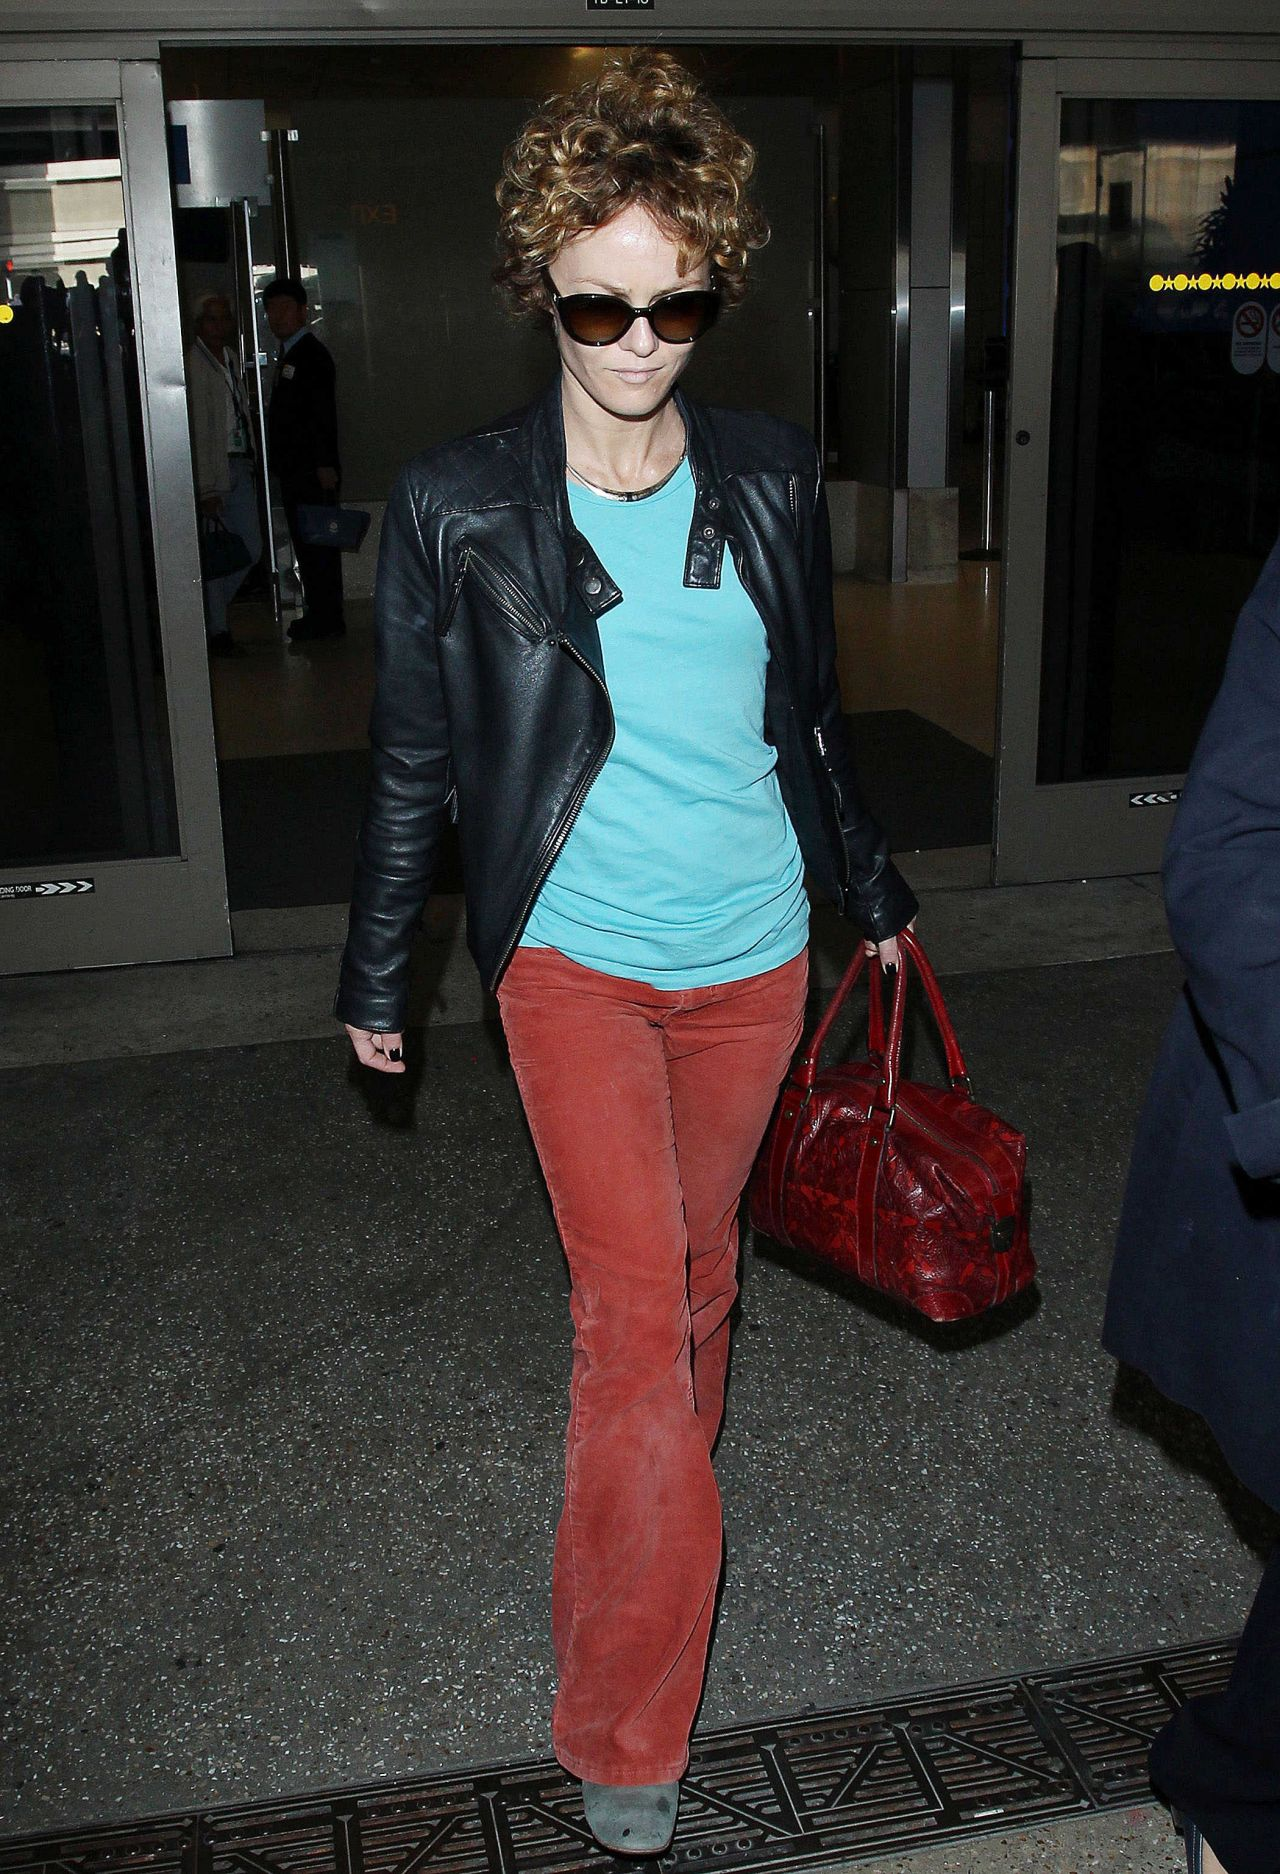 Vanessa Paradis At LAX Airport in Los Angeles, March 2014